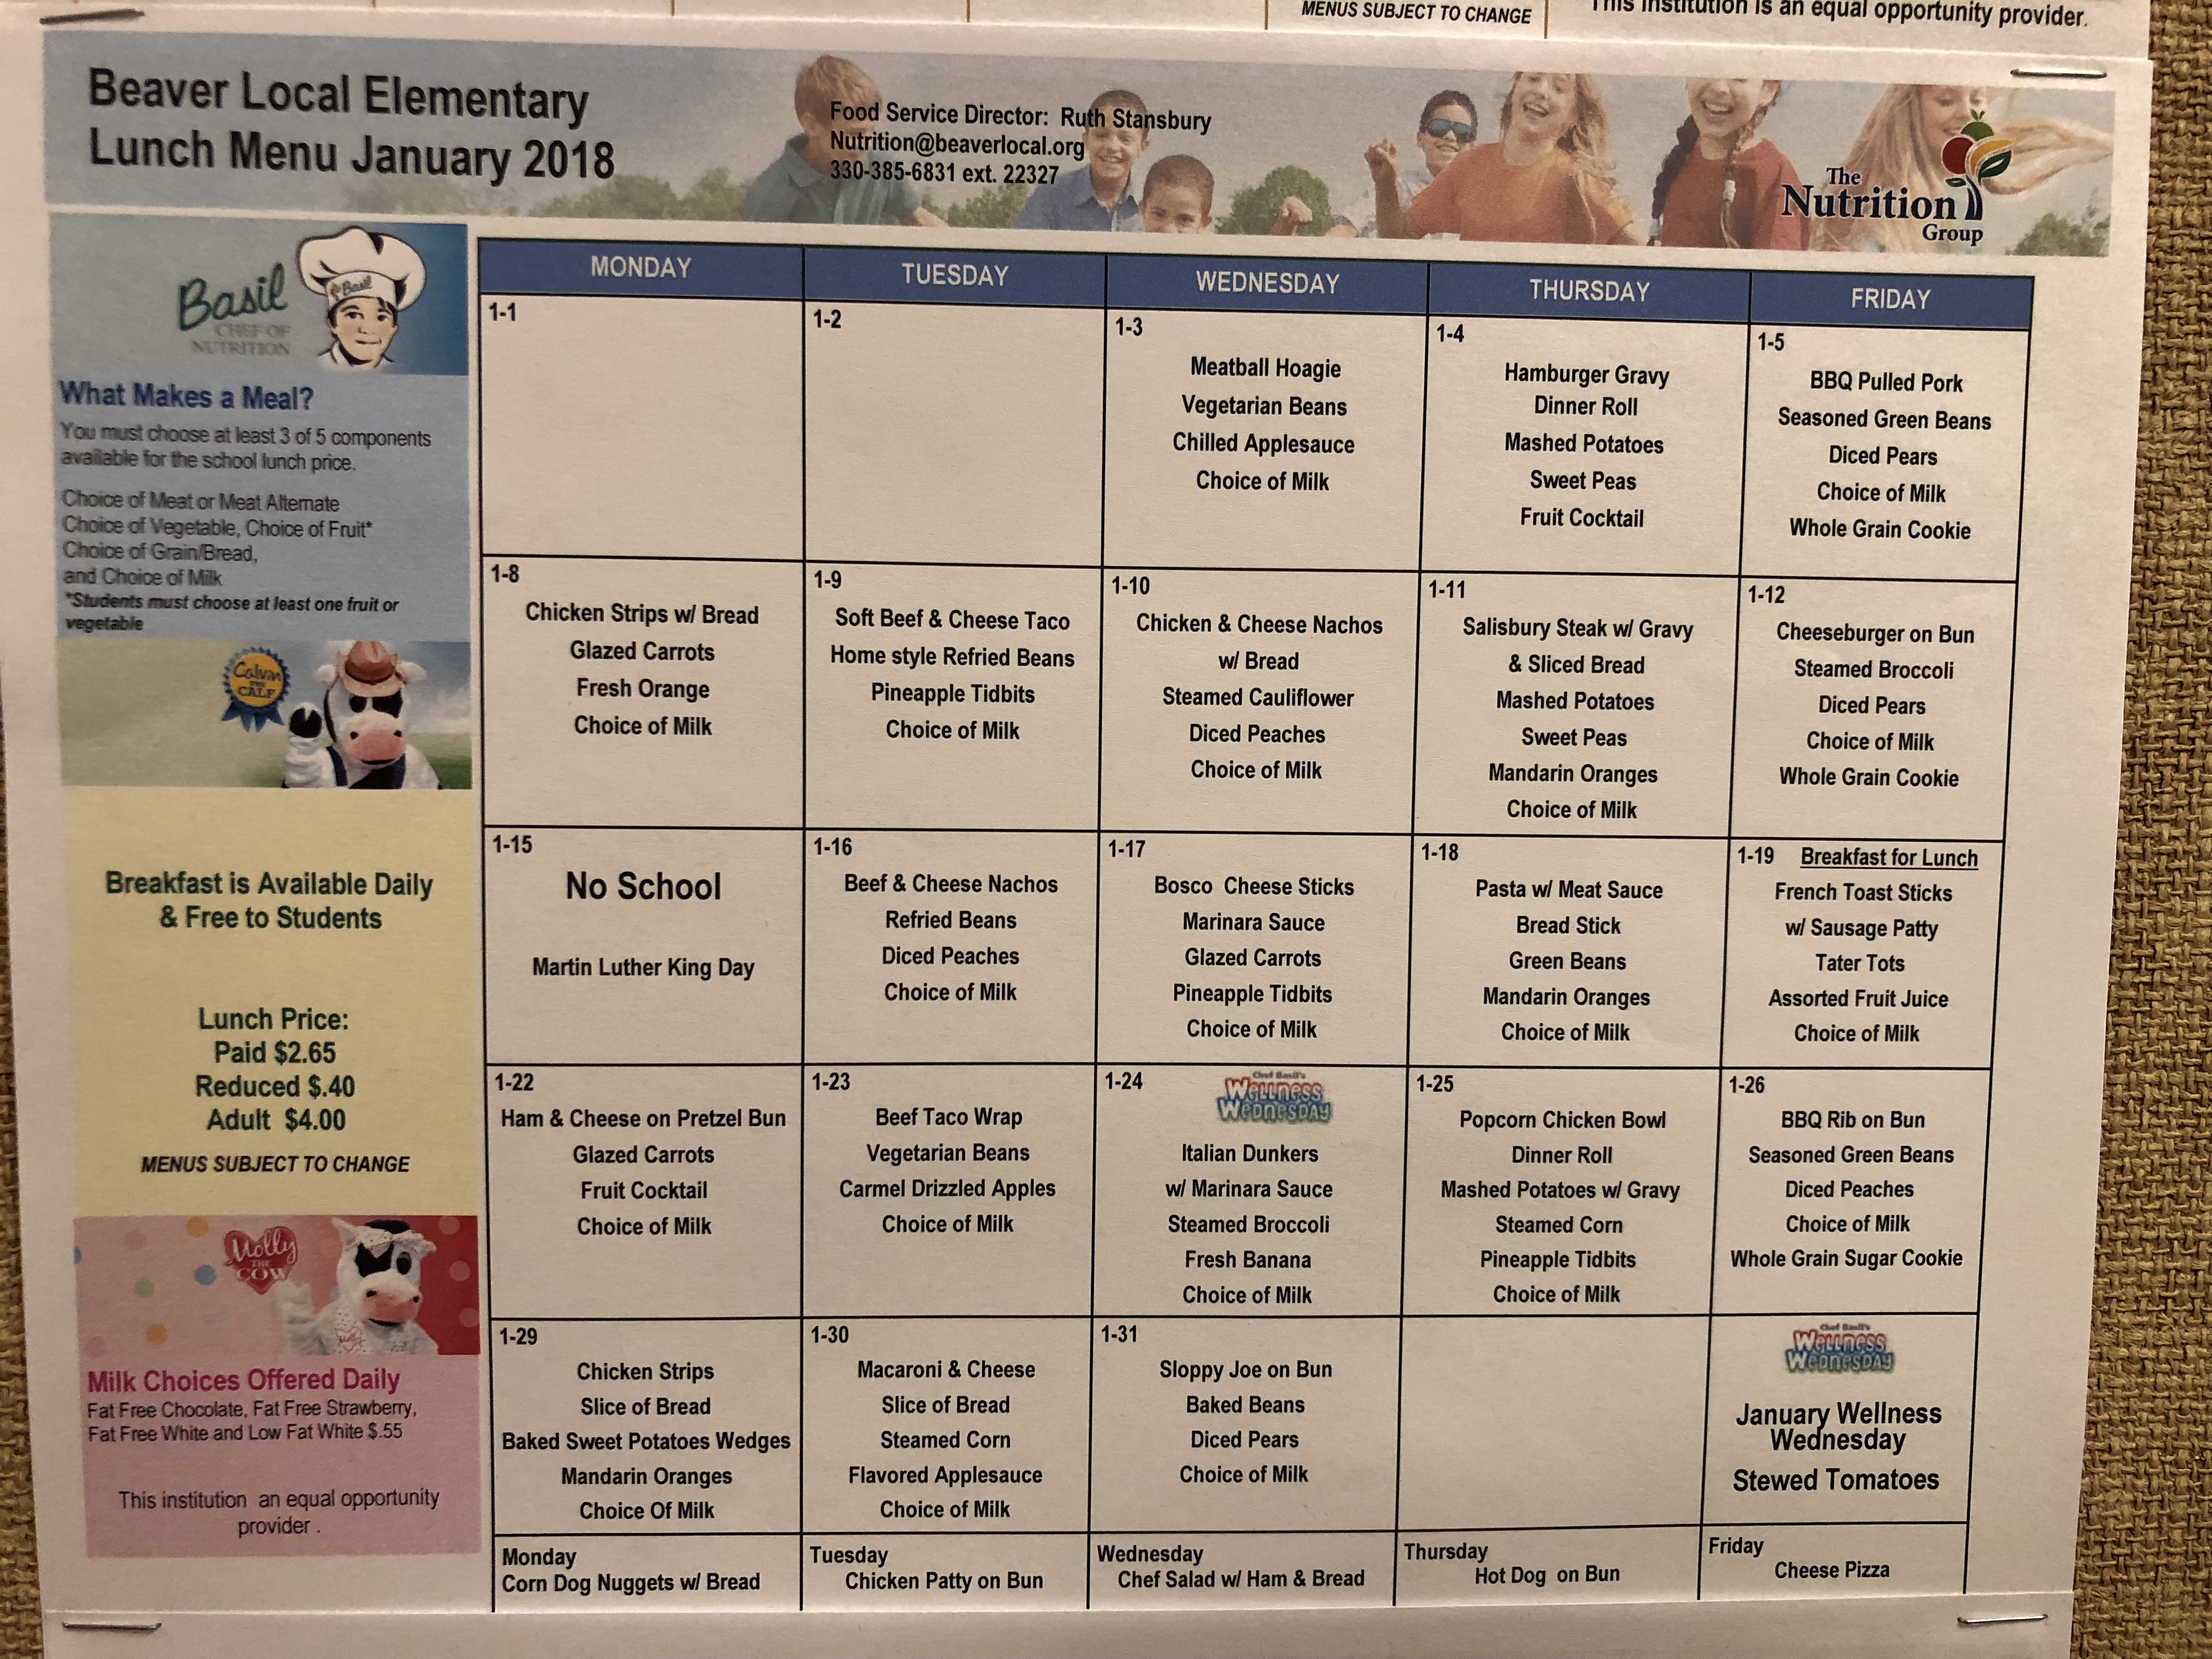 Beaver Local Elementary Lunch Menu for month of January